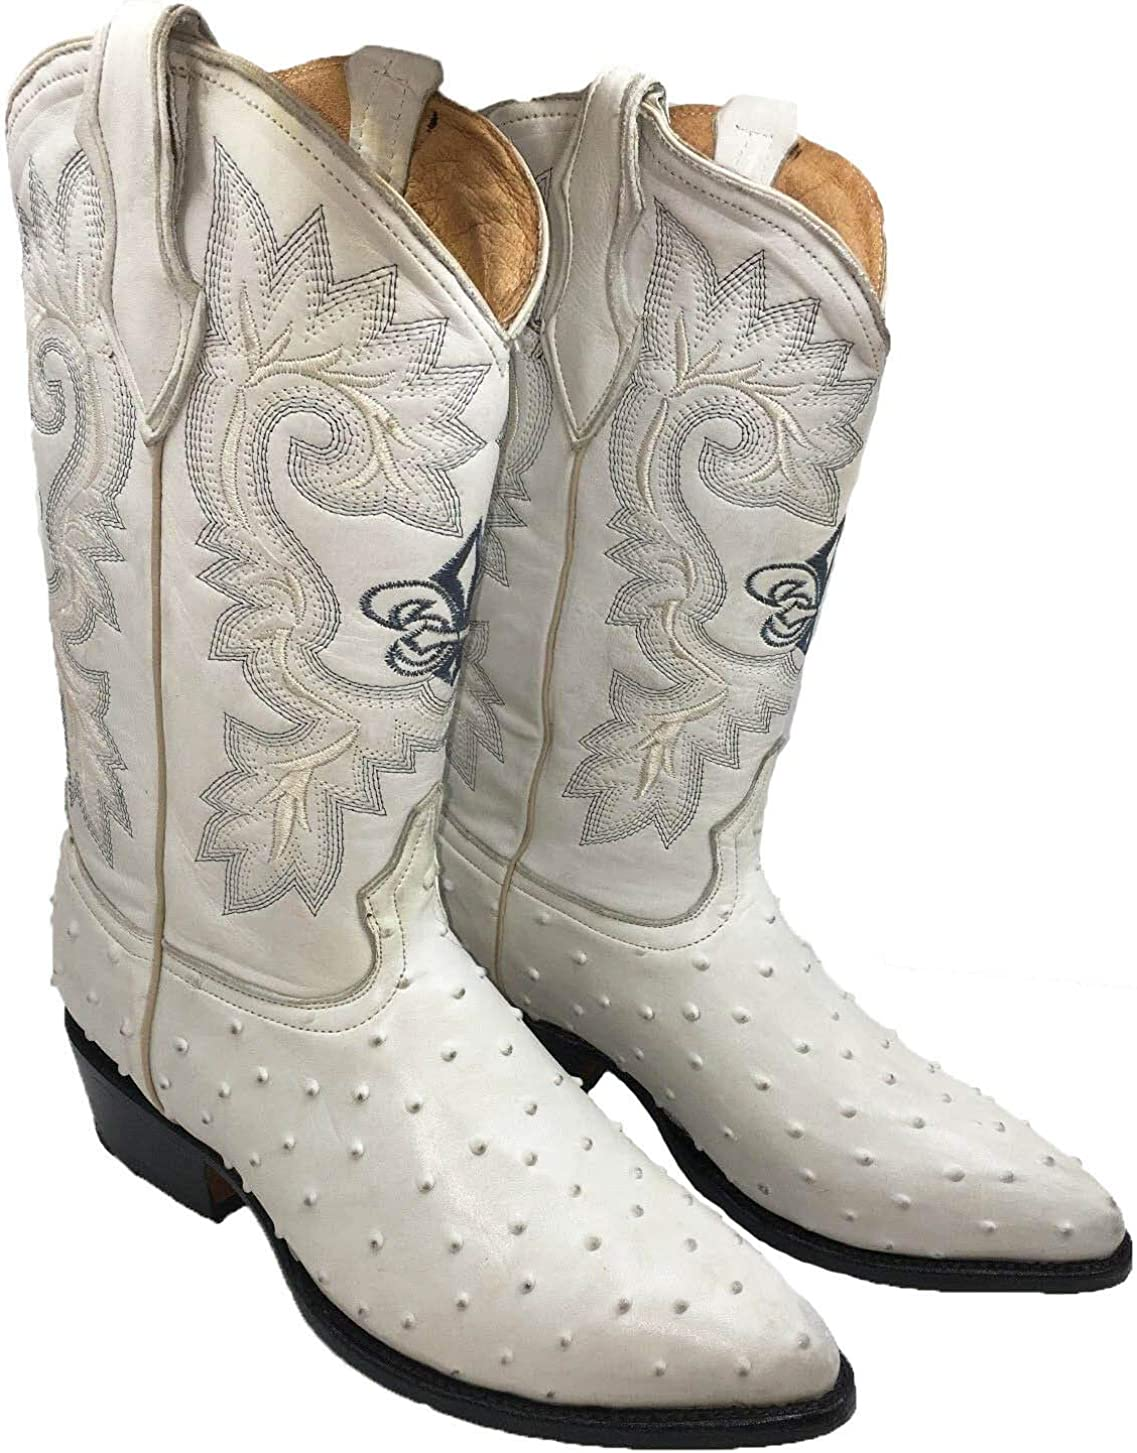 Spasm price Men's Cowboy Boots Ostrich Print Western SEAL limited product Botas Rodeo Leather Lig